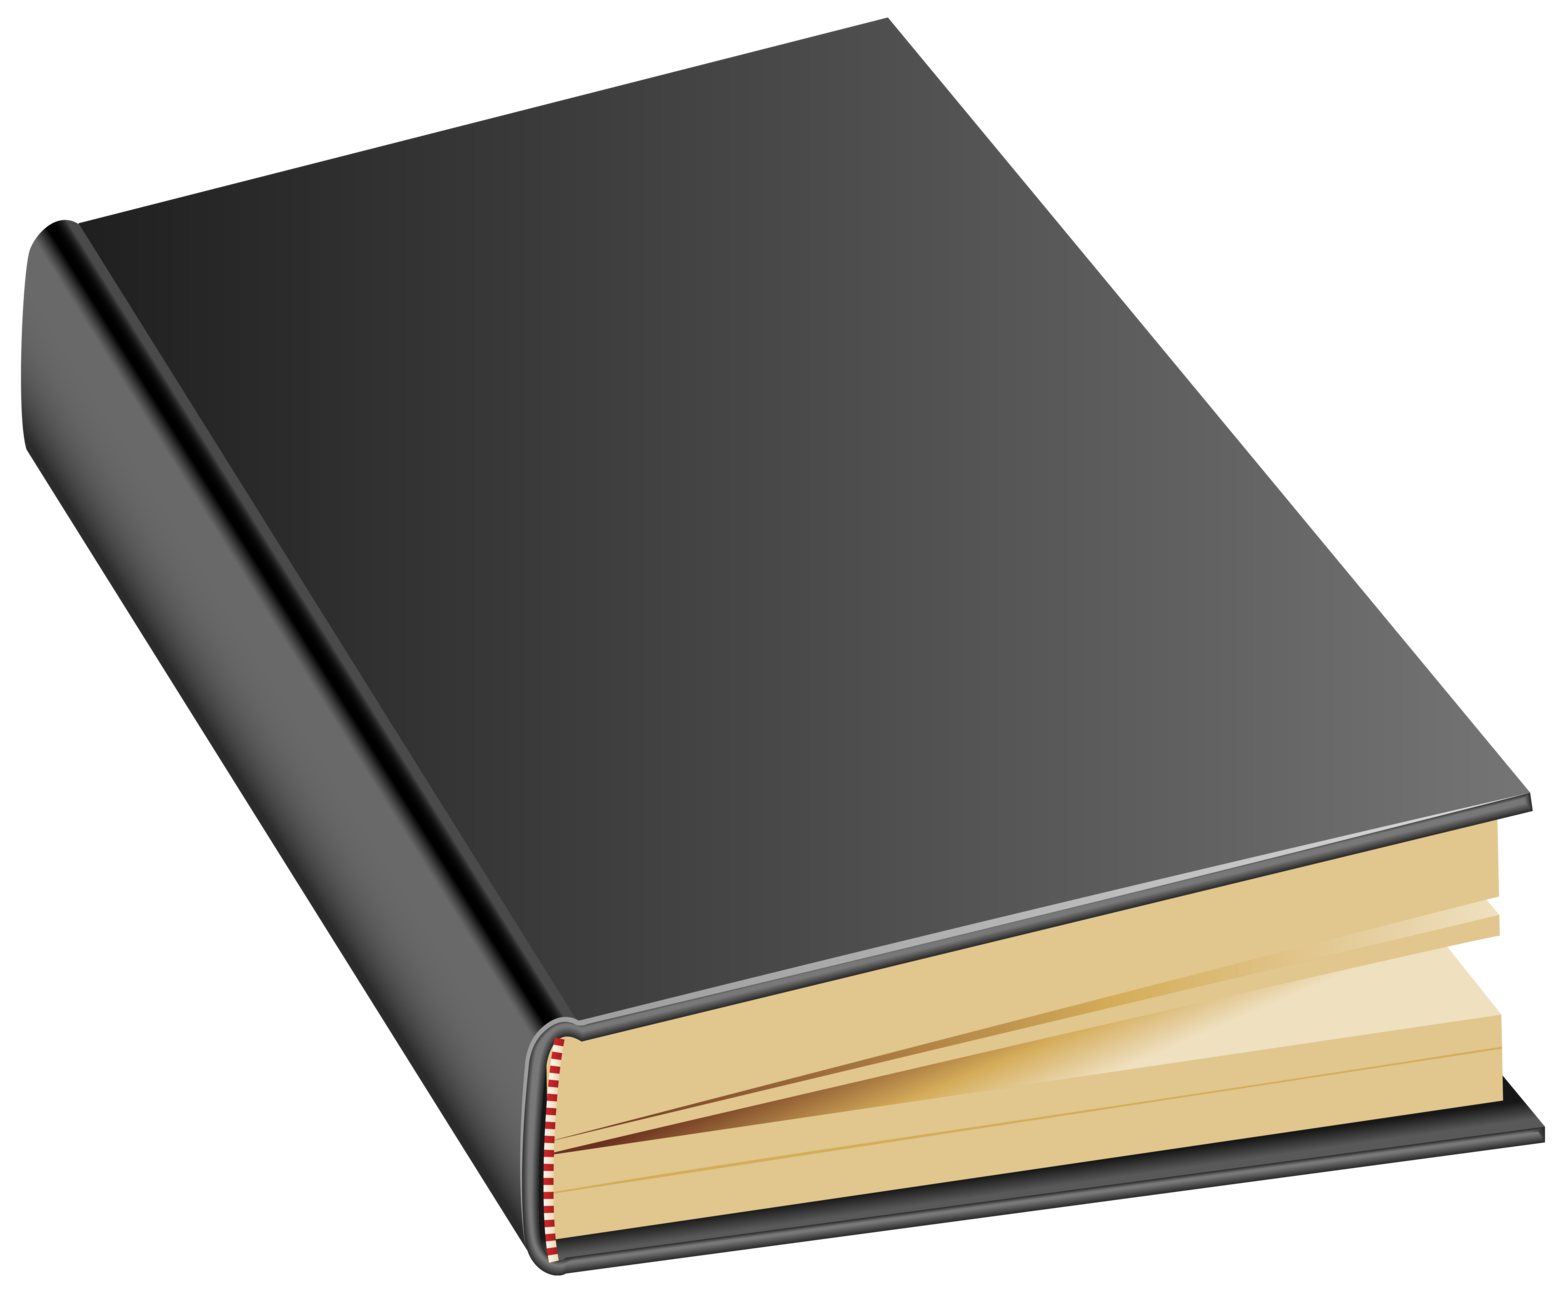 Book Cover Black : Black book png clipart